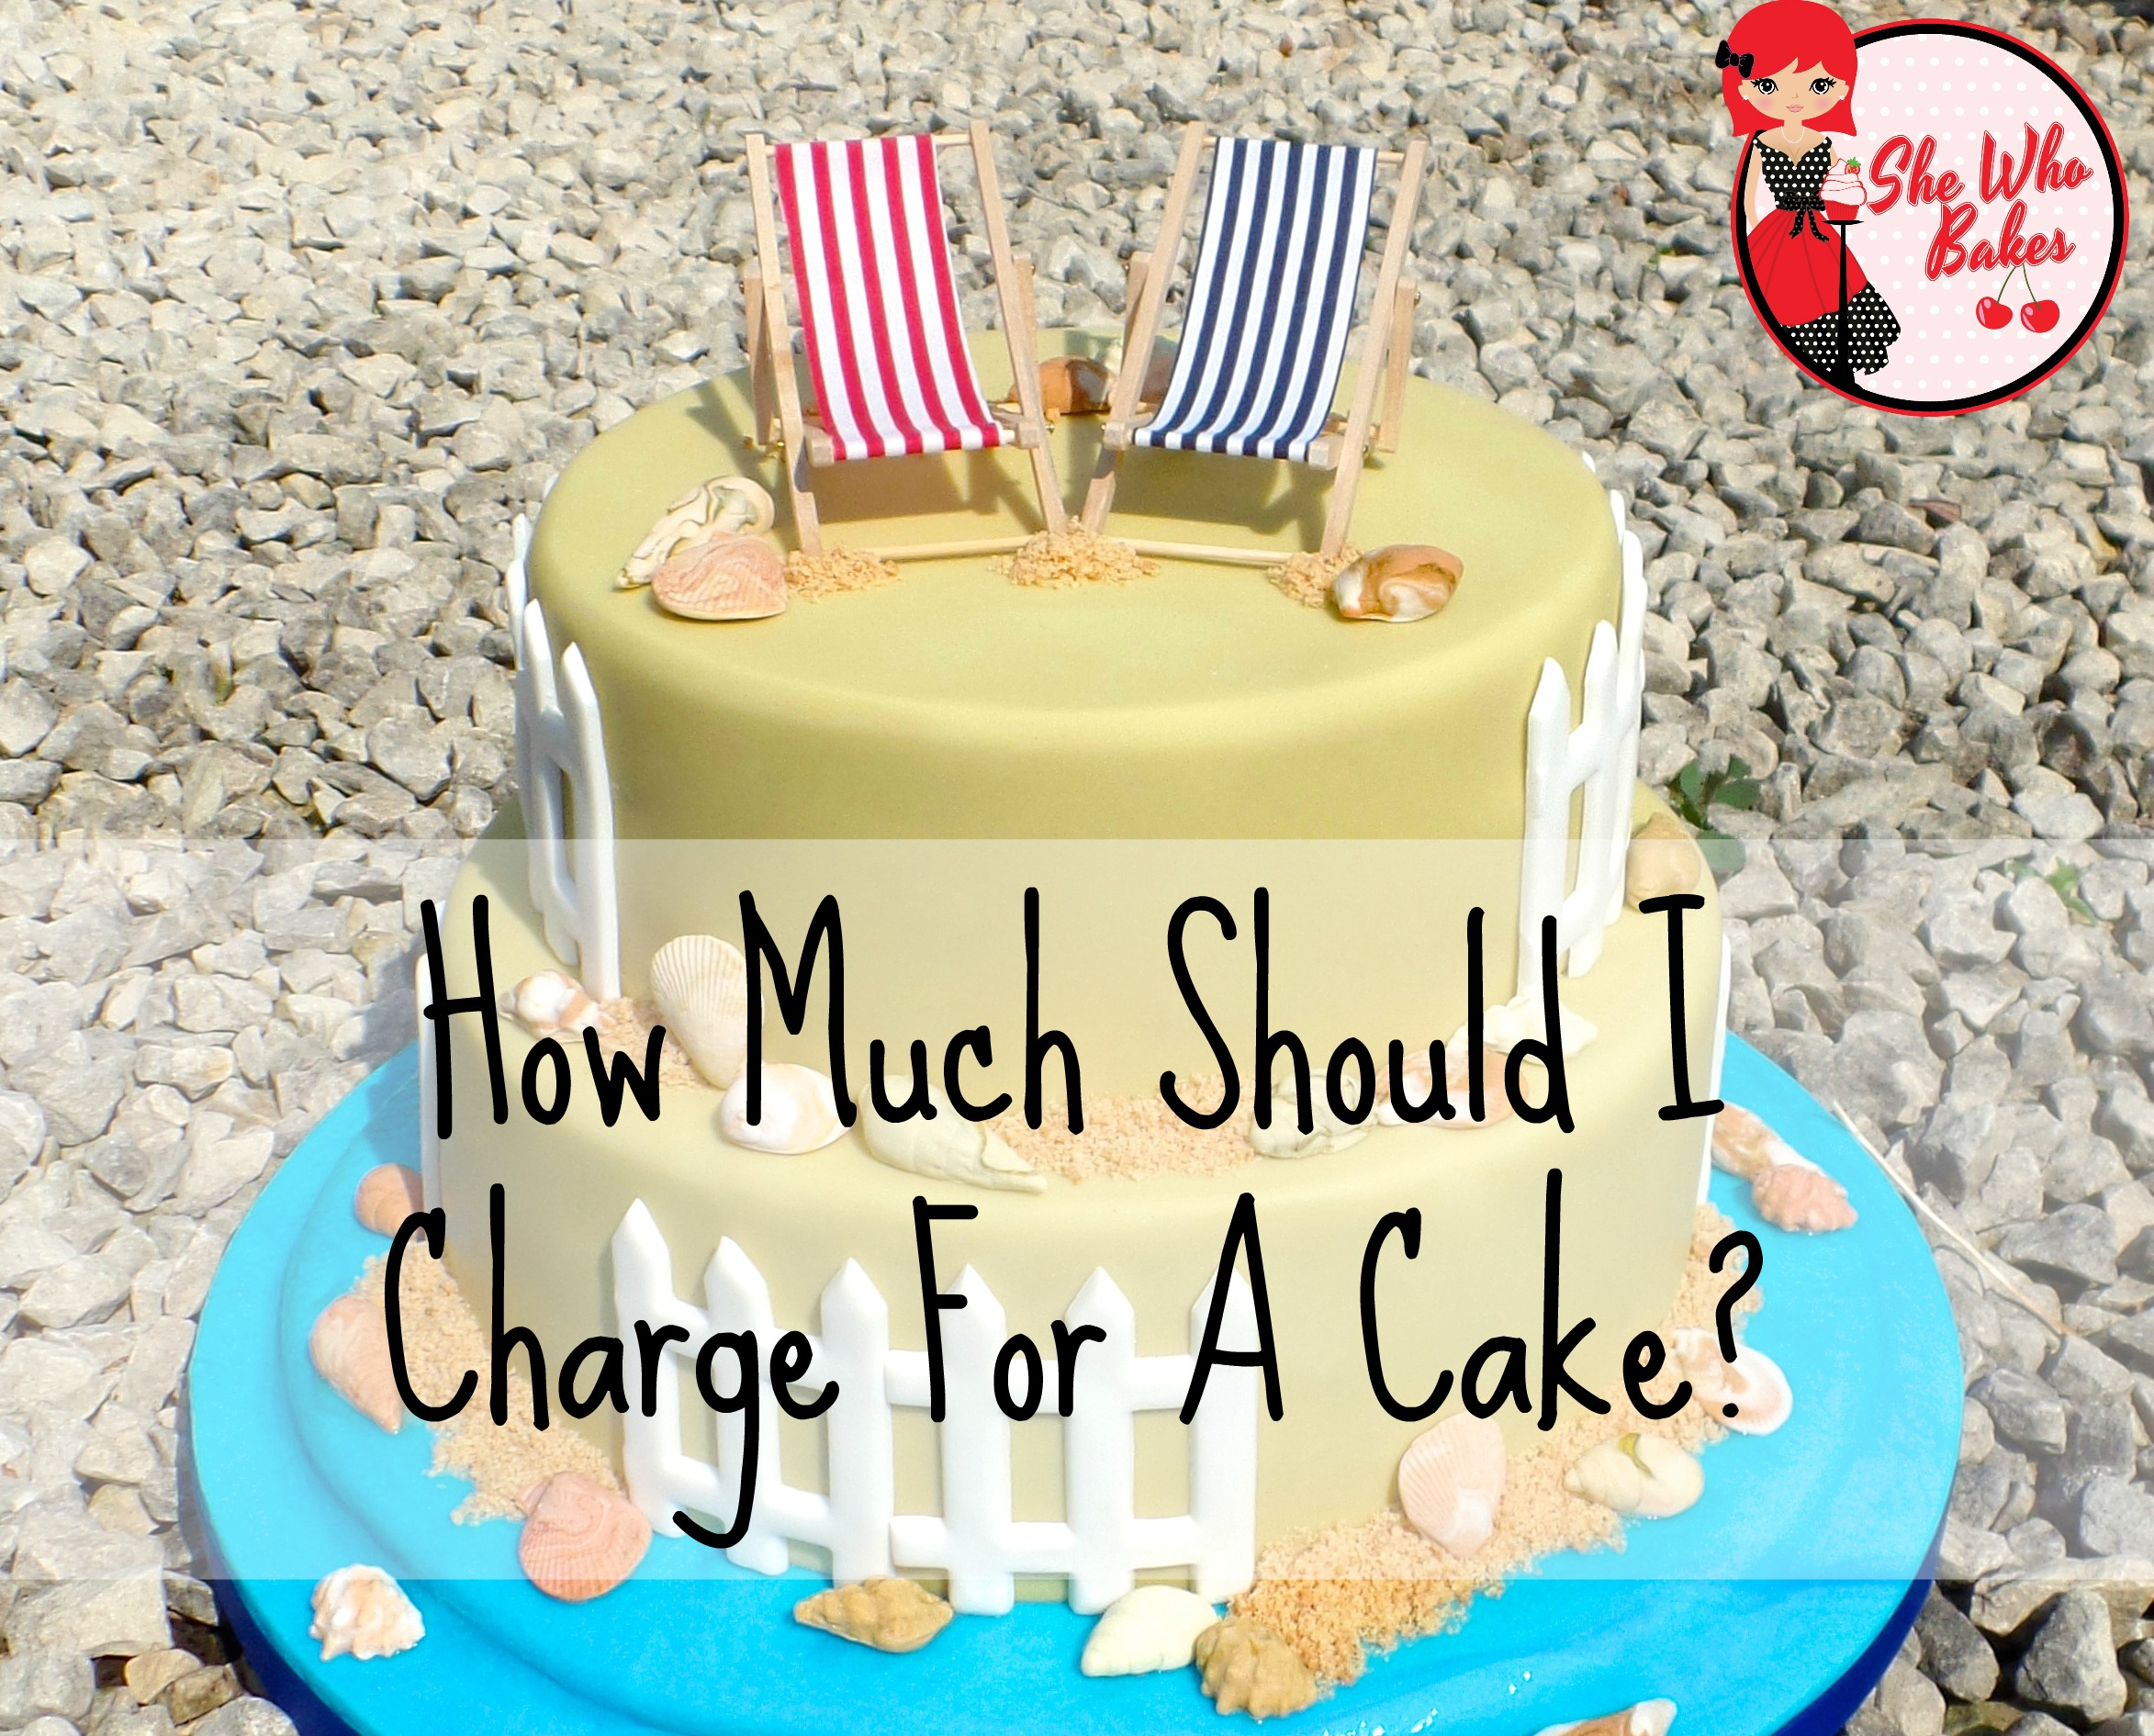 How To Start A Cake Business From Home Archives She Who Bakes